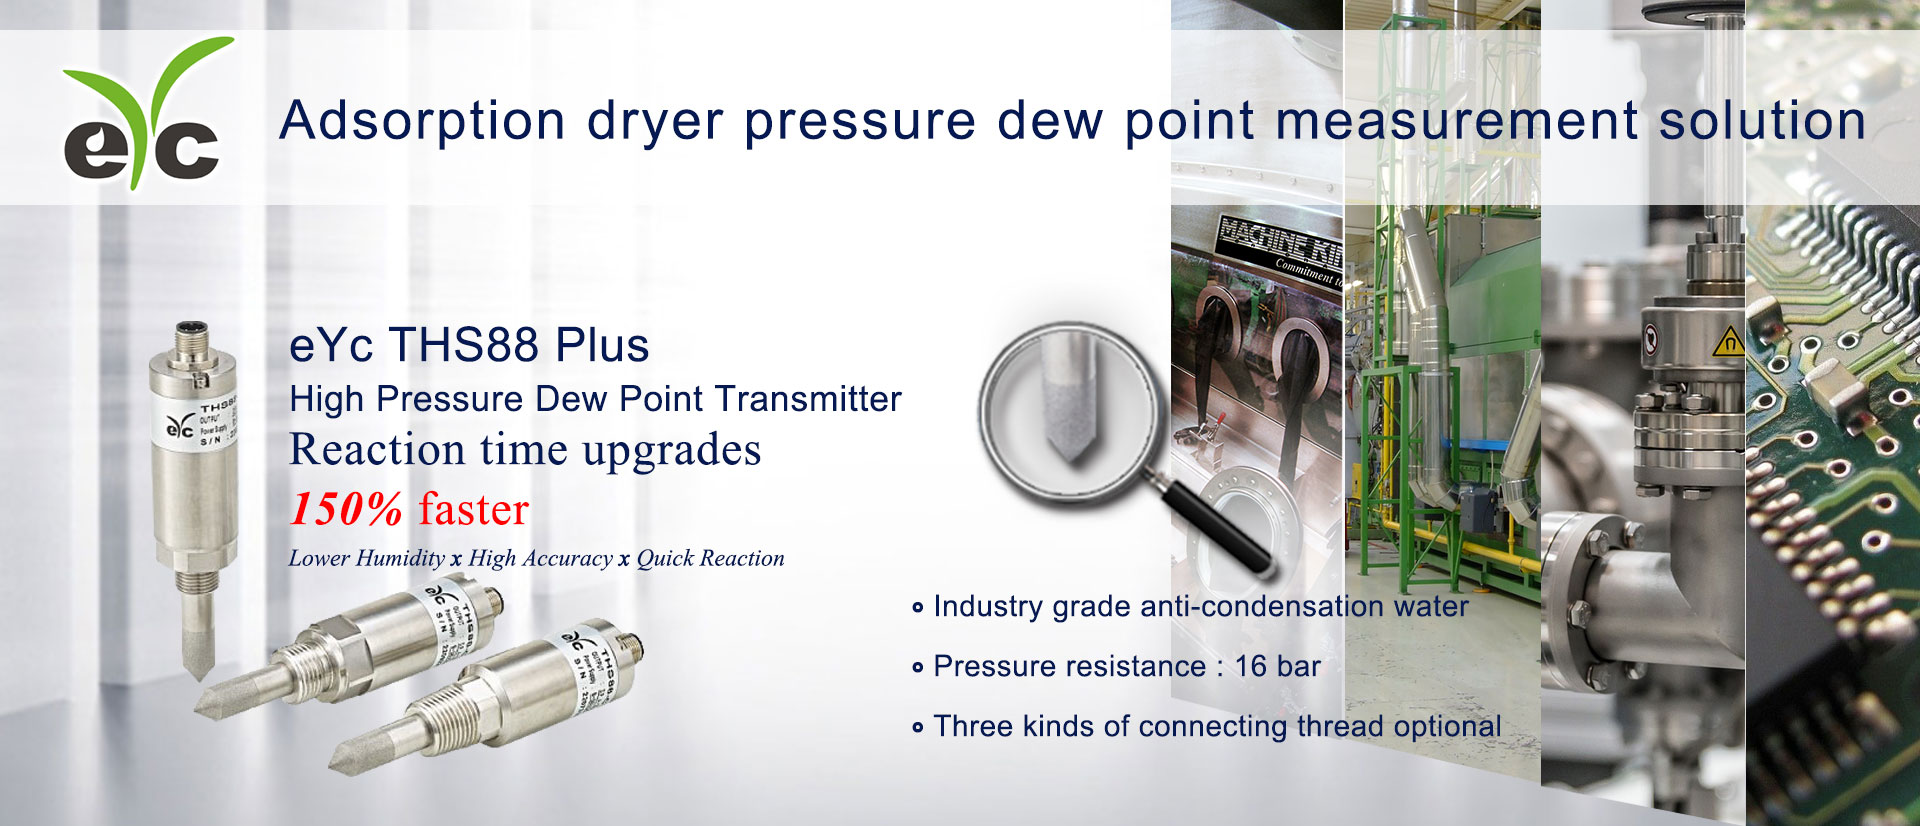 eYc THS88 Plus Industry Application Adsorption dryer pressure dew point measurement solution